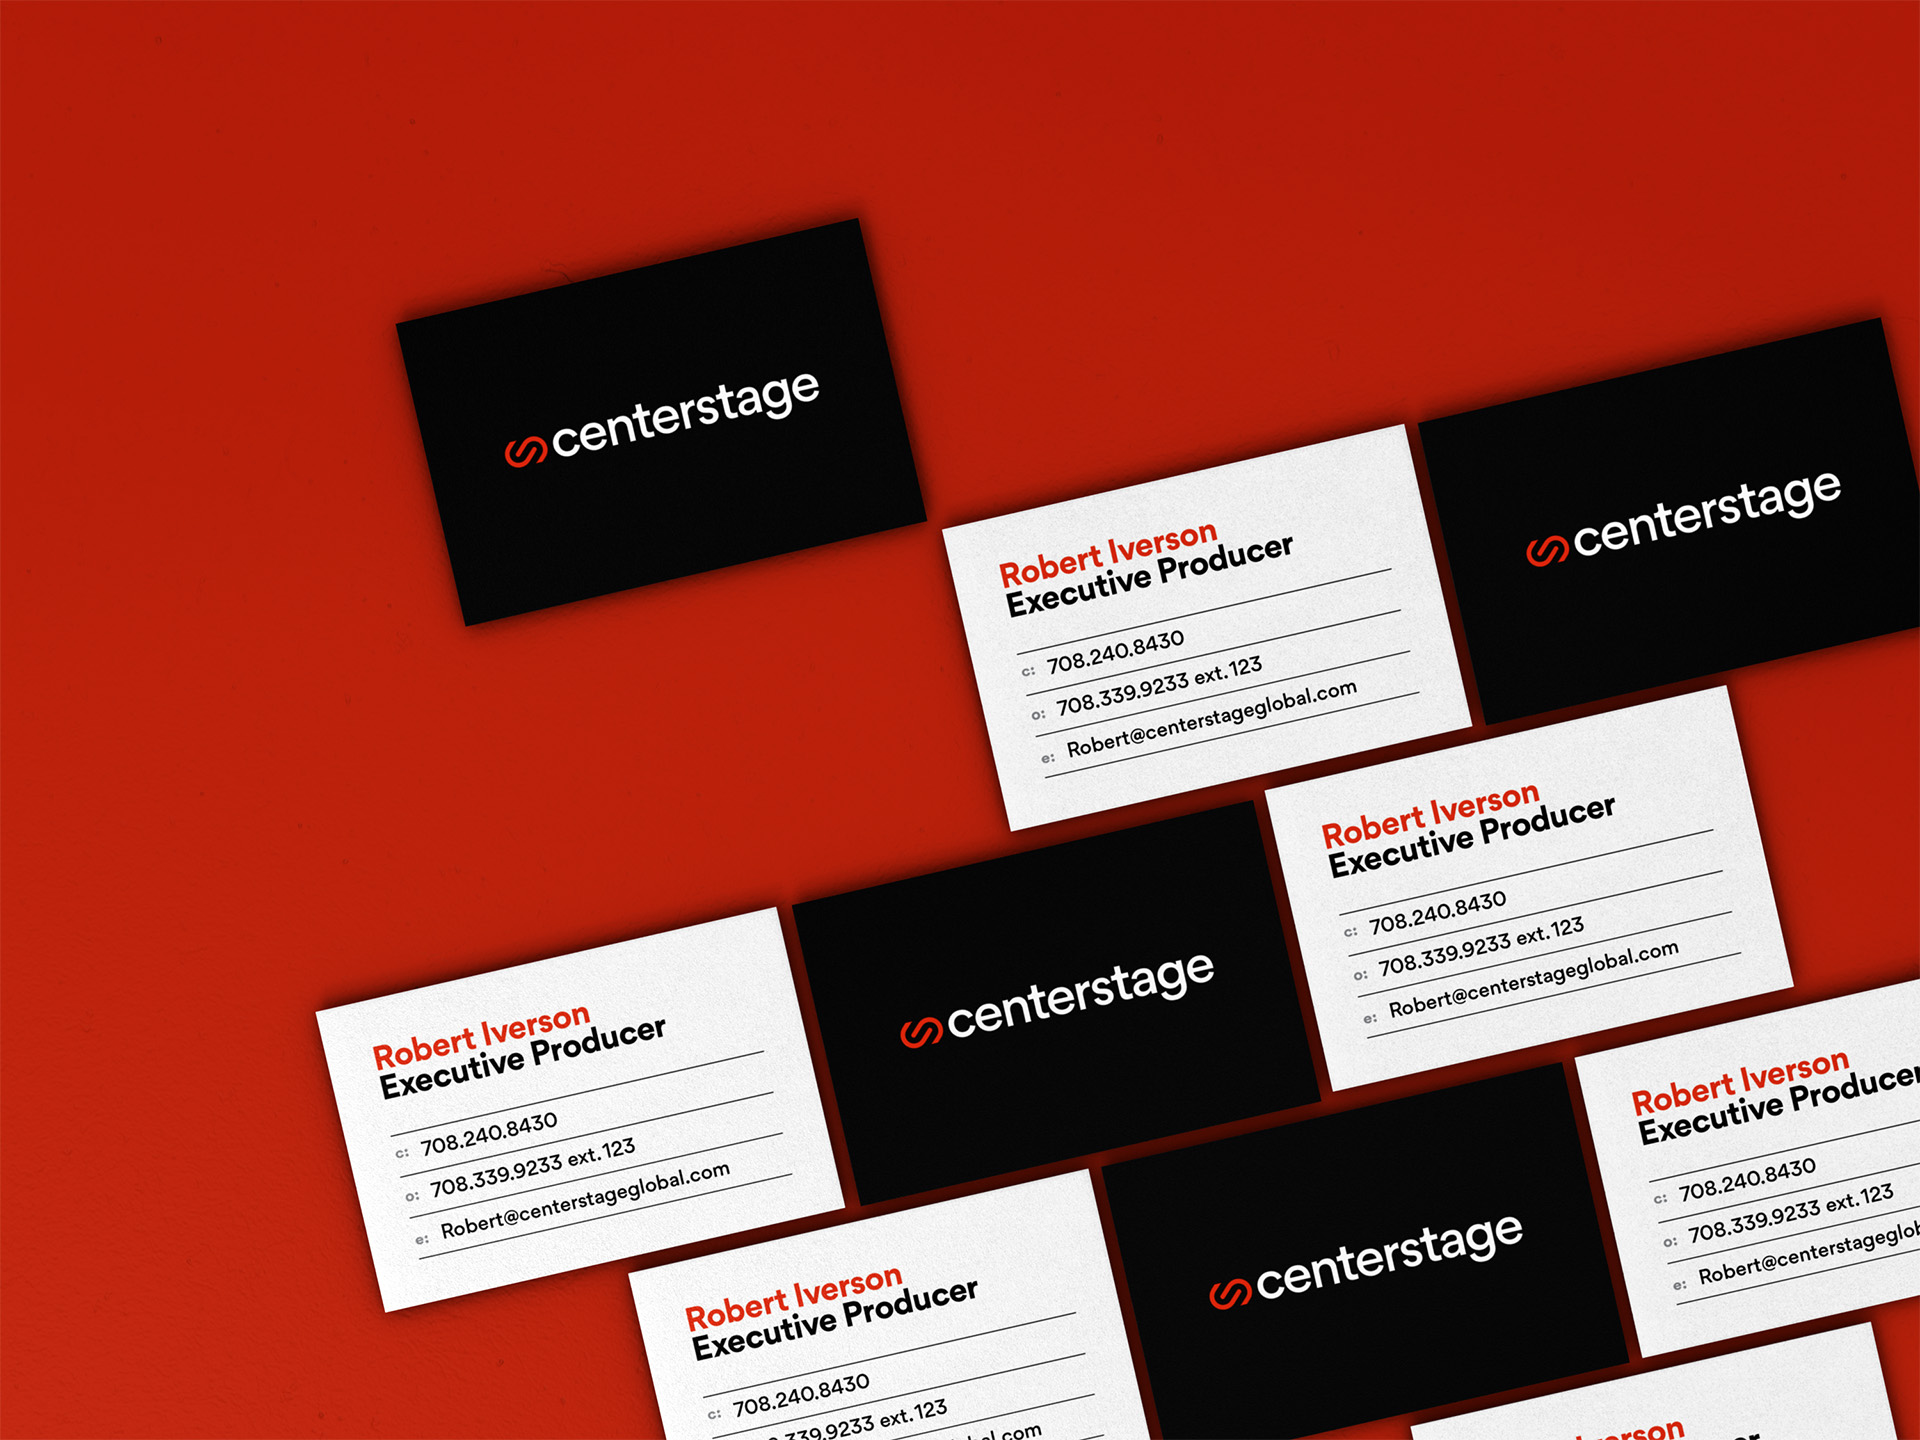 Centerstage business cards from a top angle in a brick-like configuration